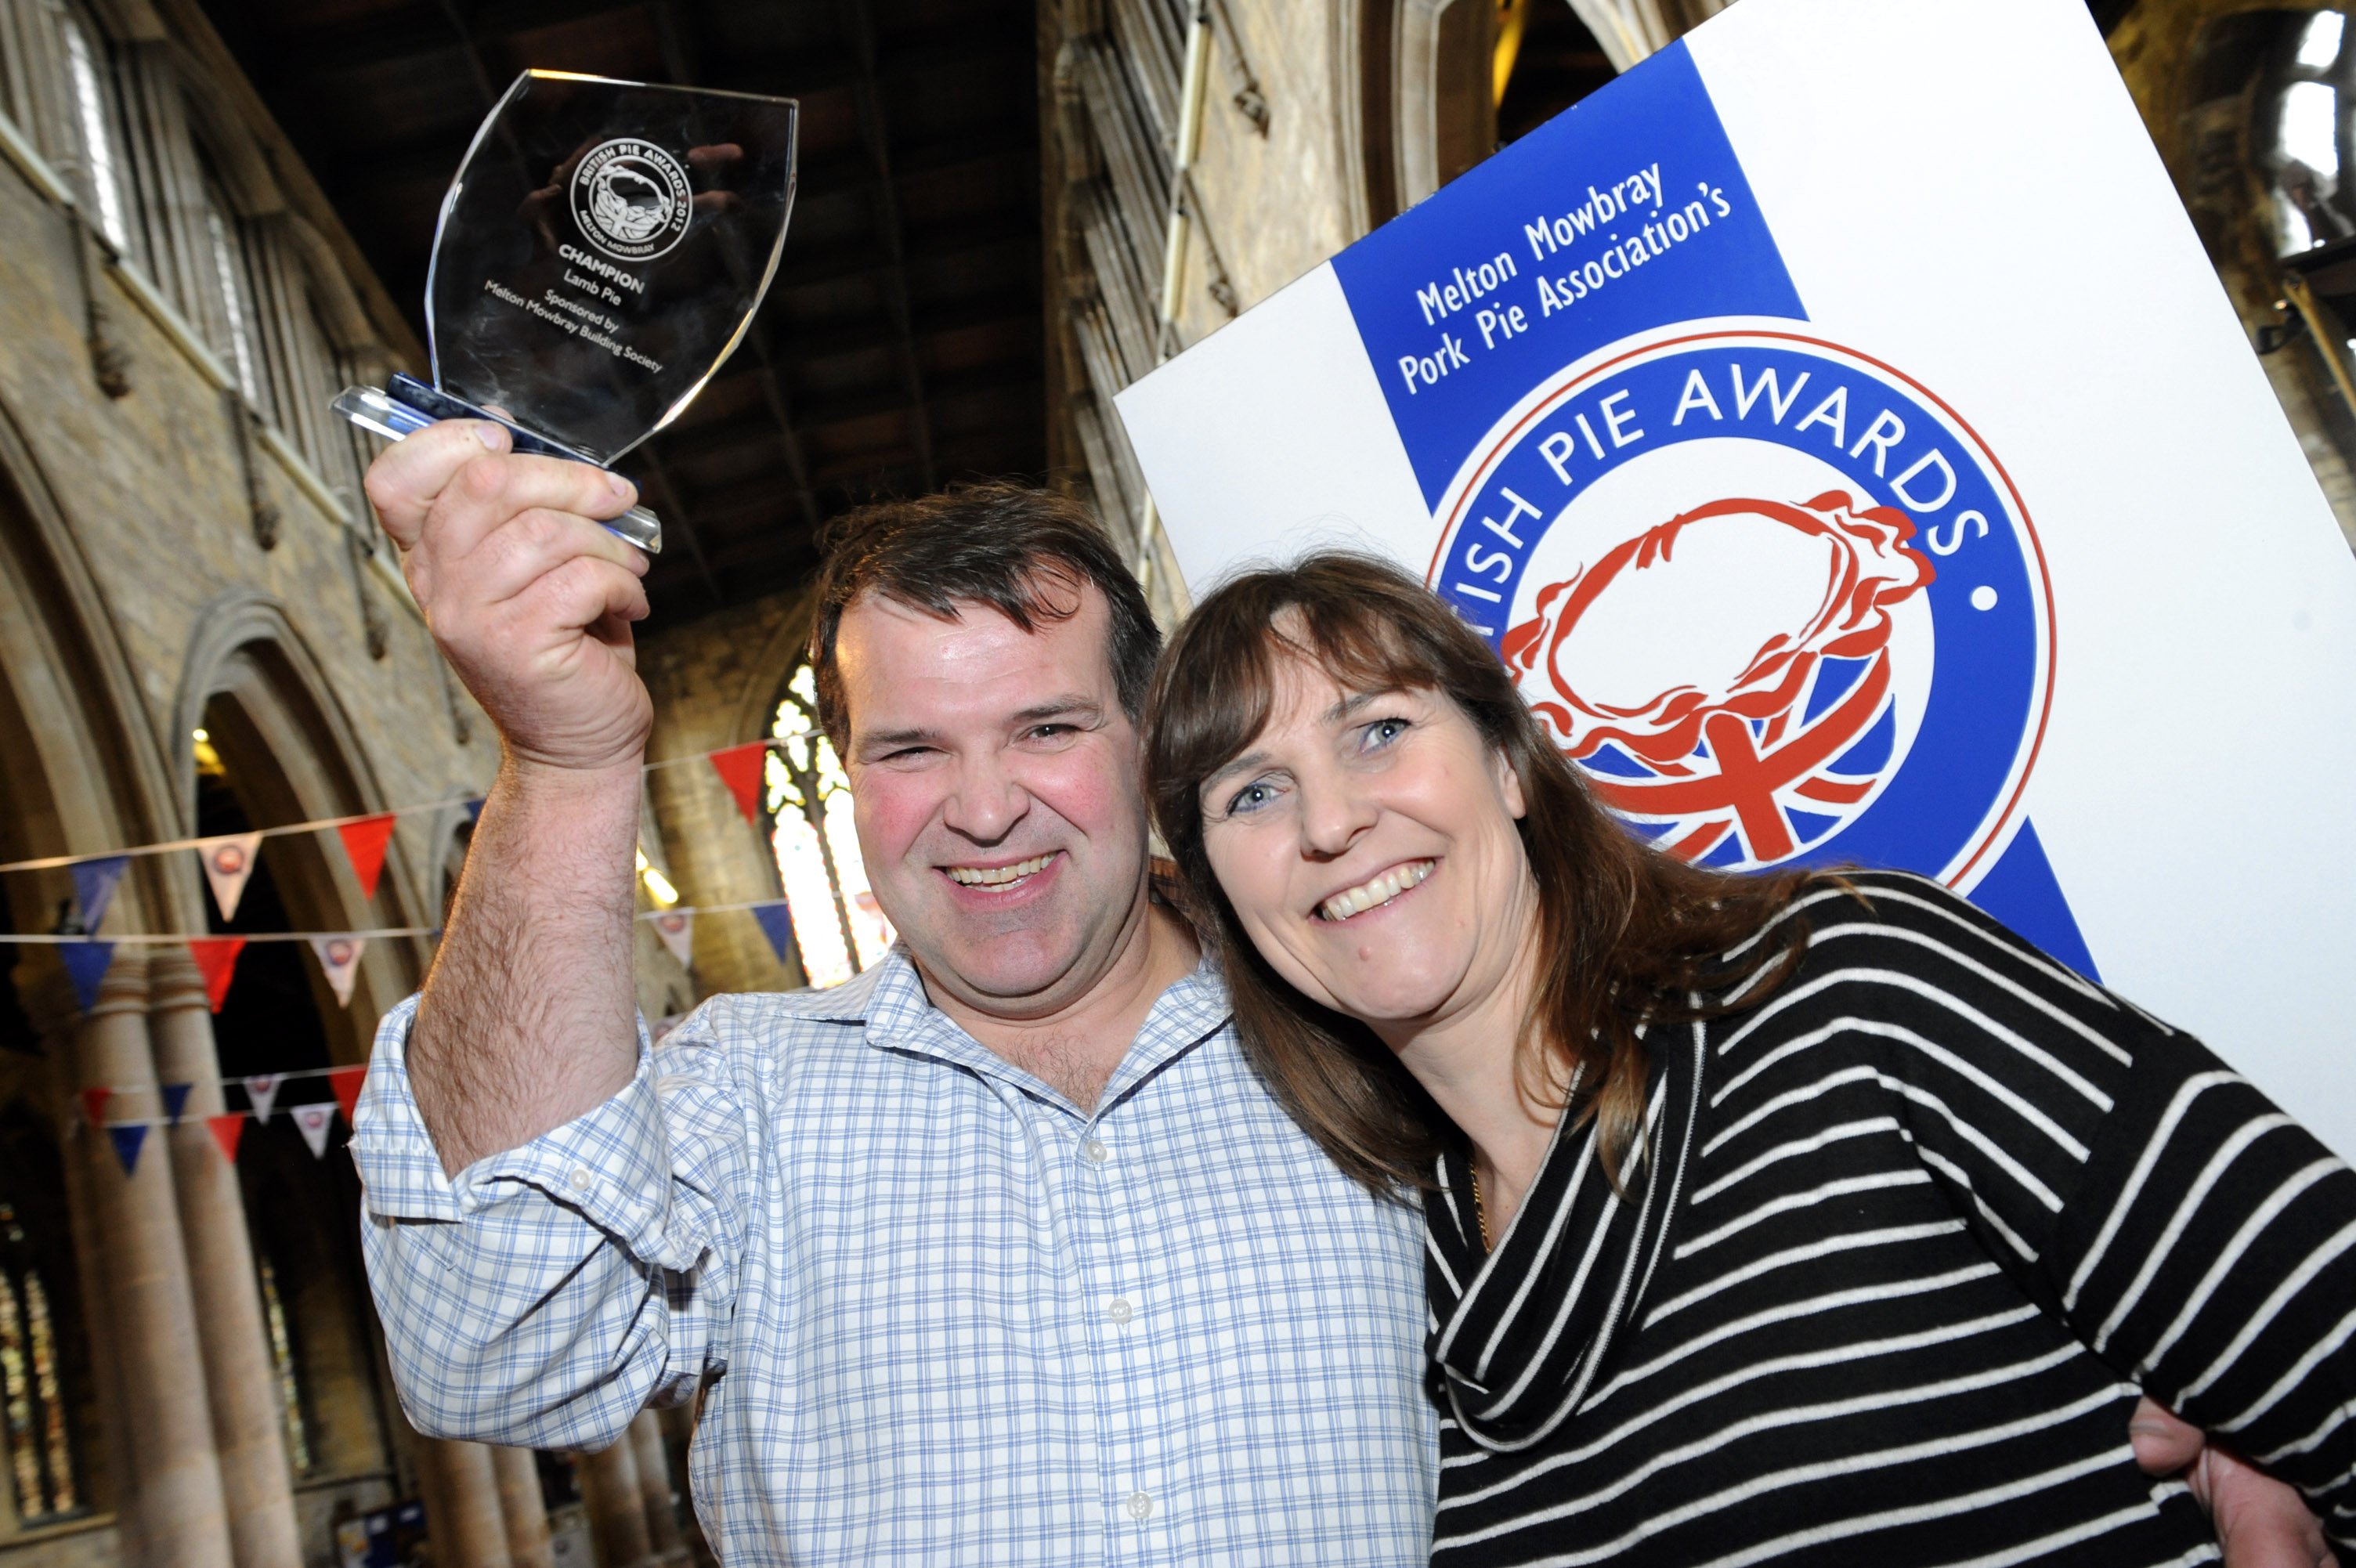 2012 British Pie Awards 641